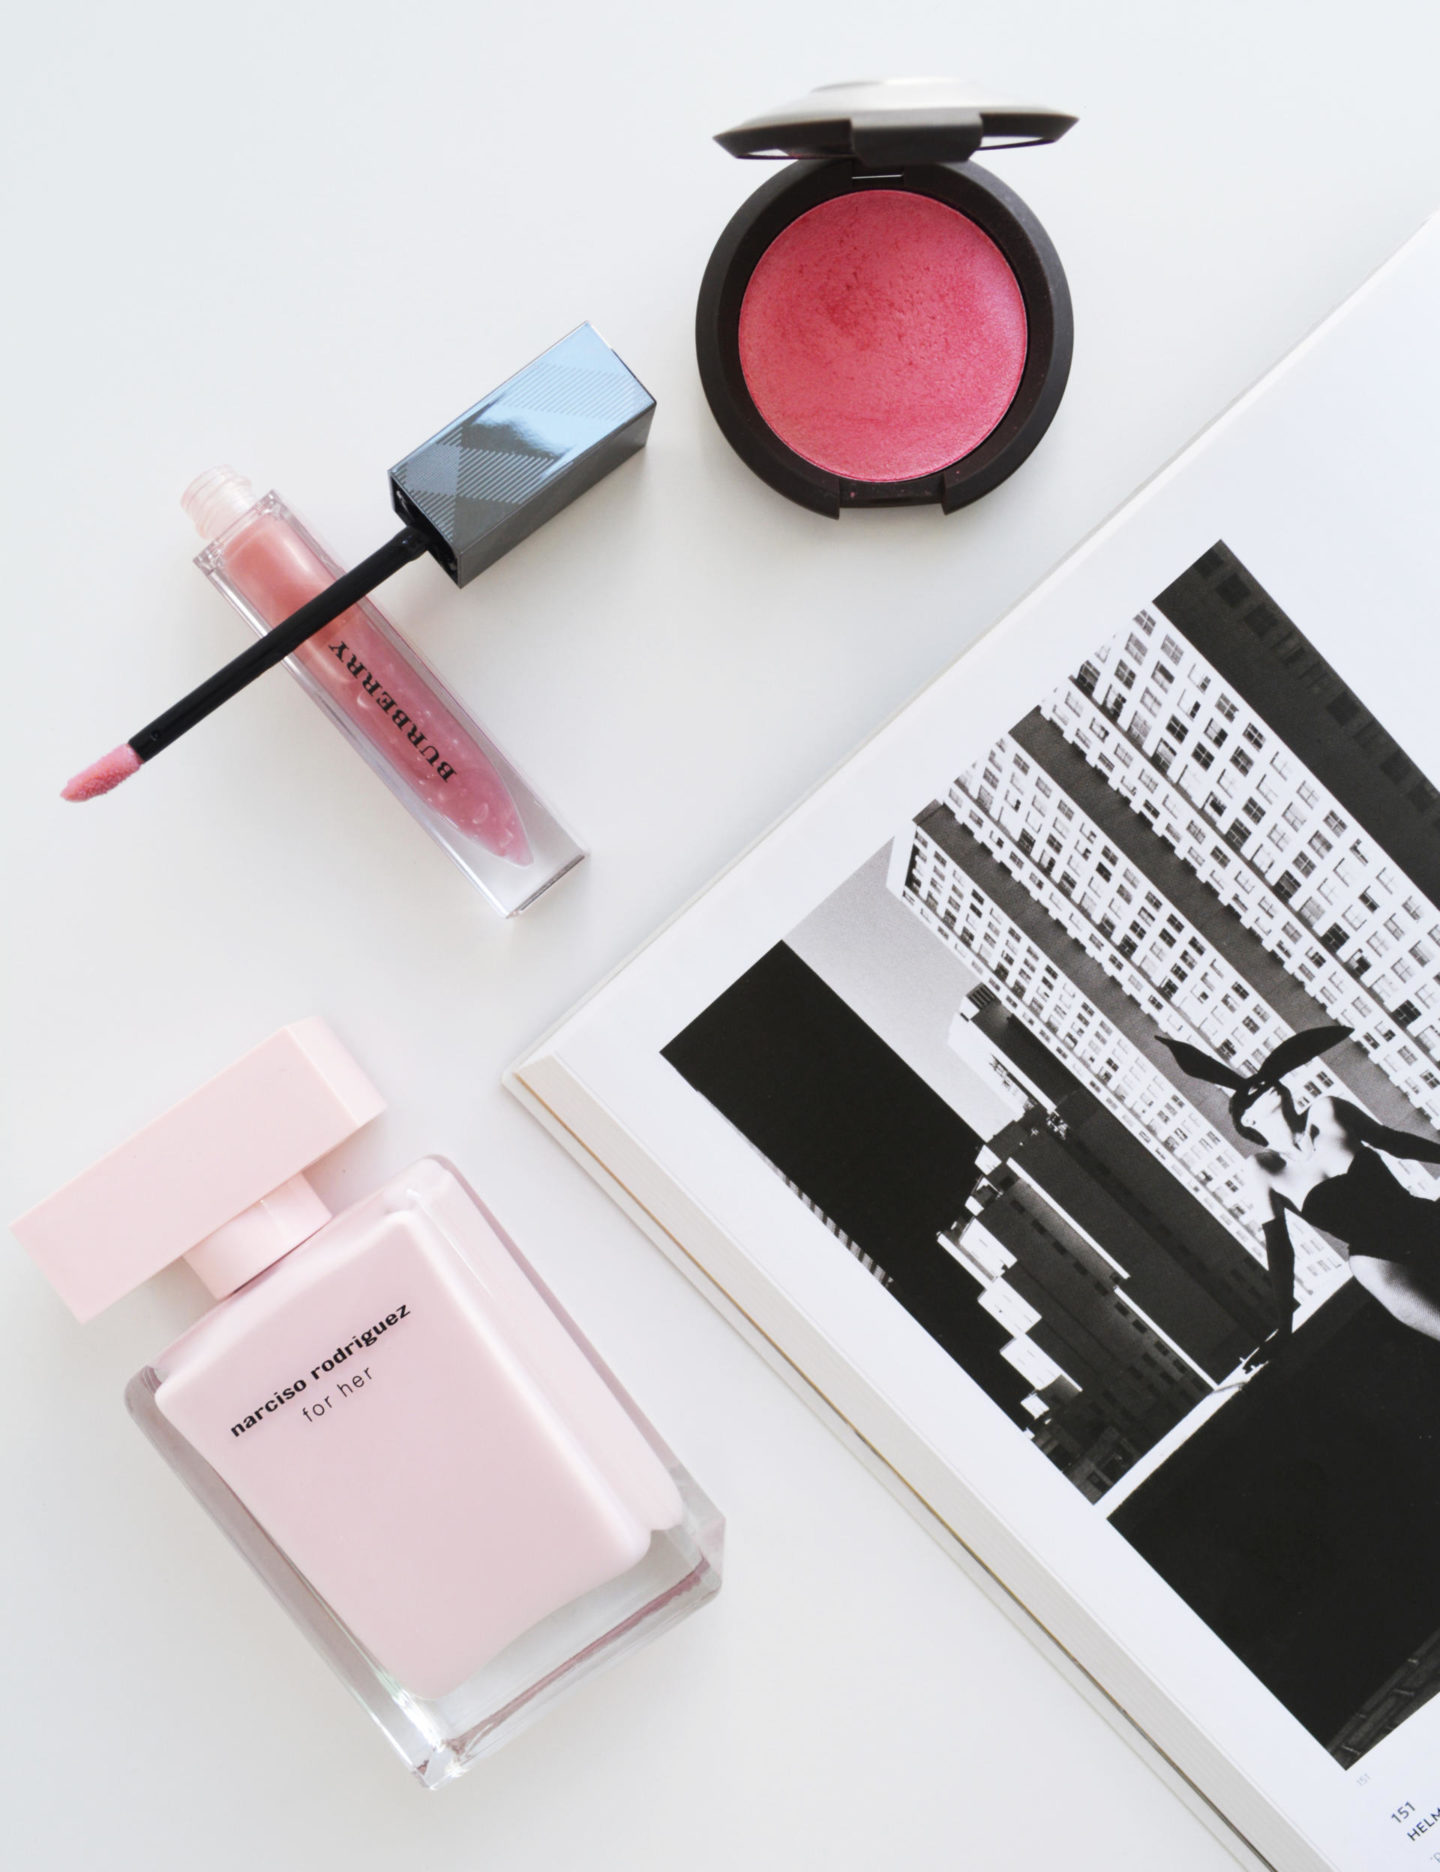 Becca Camelia, Burberry Lip Glow, Narciso Rodriguez for her